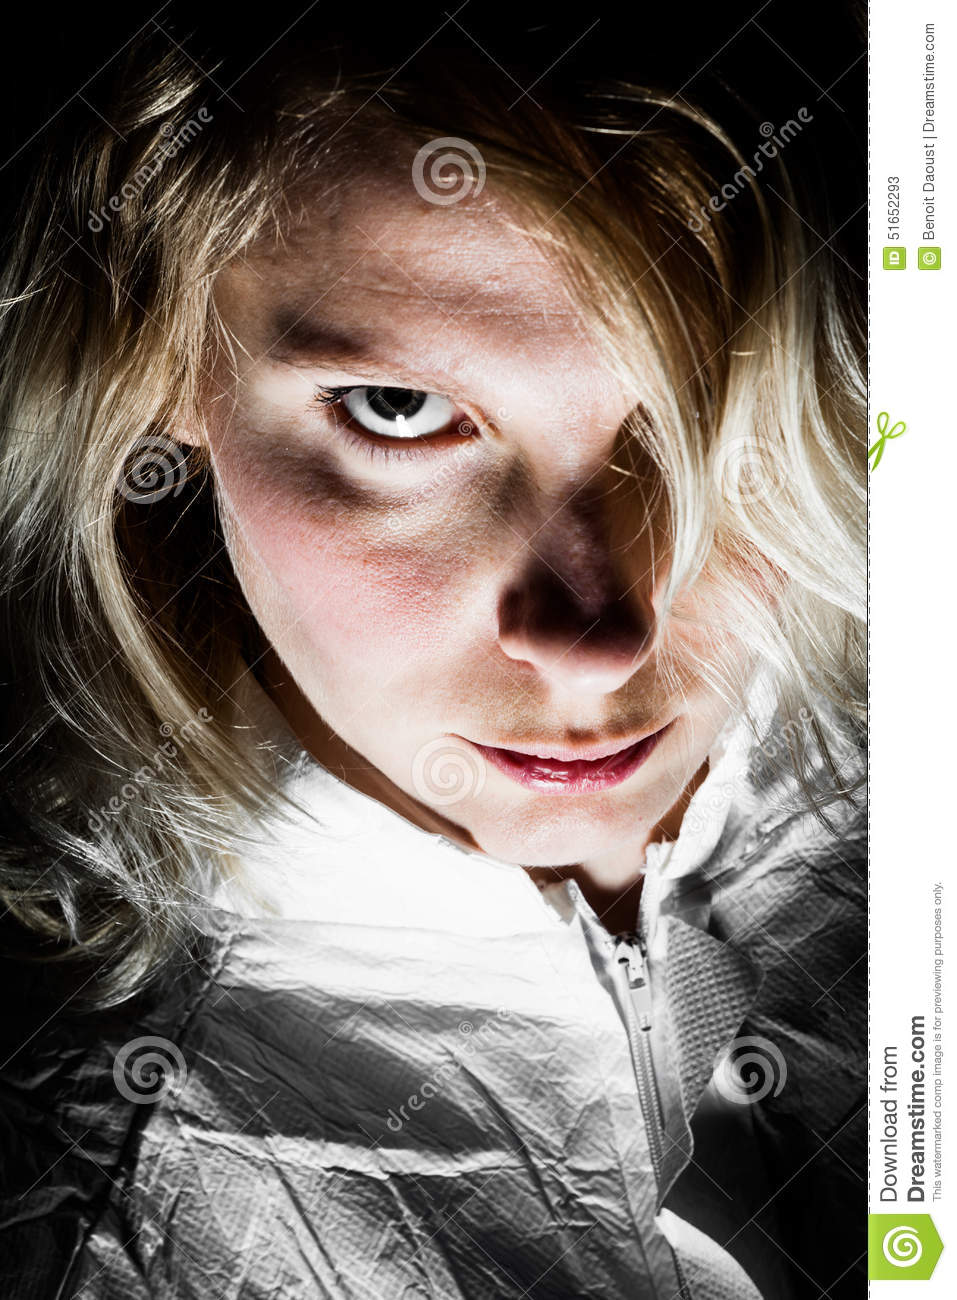 Scary Blonde Woman Looking At The Camera Stock Photo ...